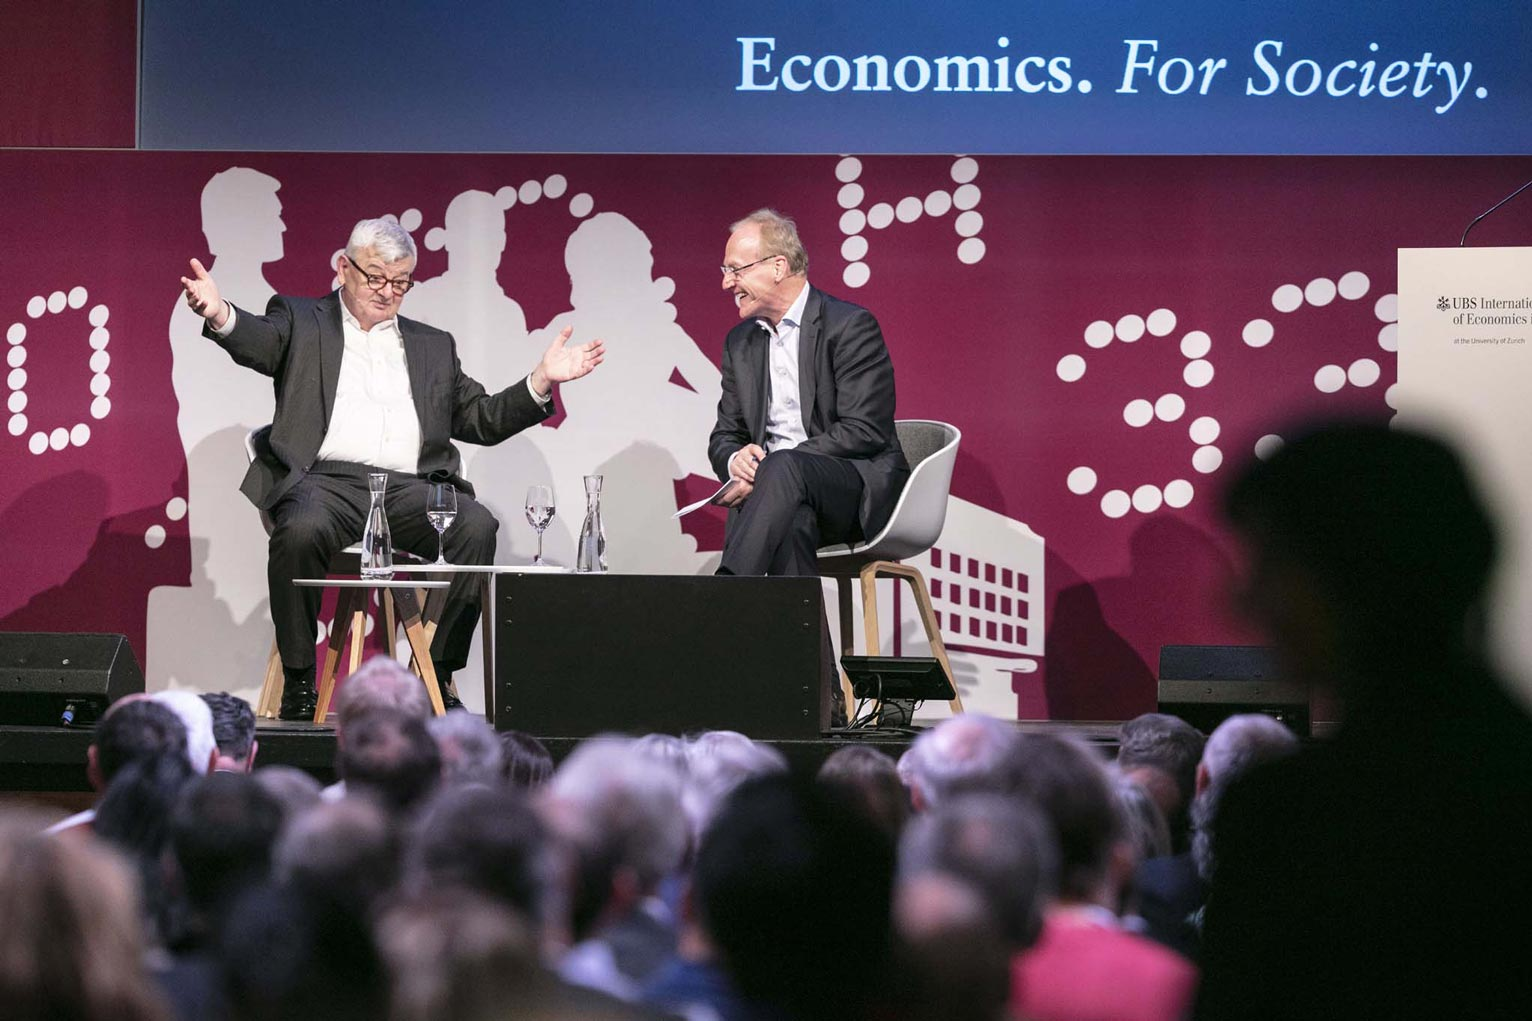 UBS Center Director Ernst Fehr (on the right) in conversation with Joschka Fischer, Former Foreign Minister and Vice Chancellor of Germany.